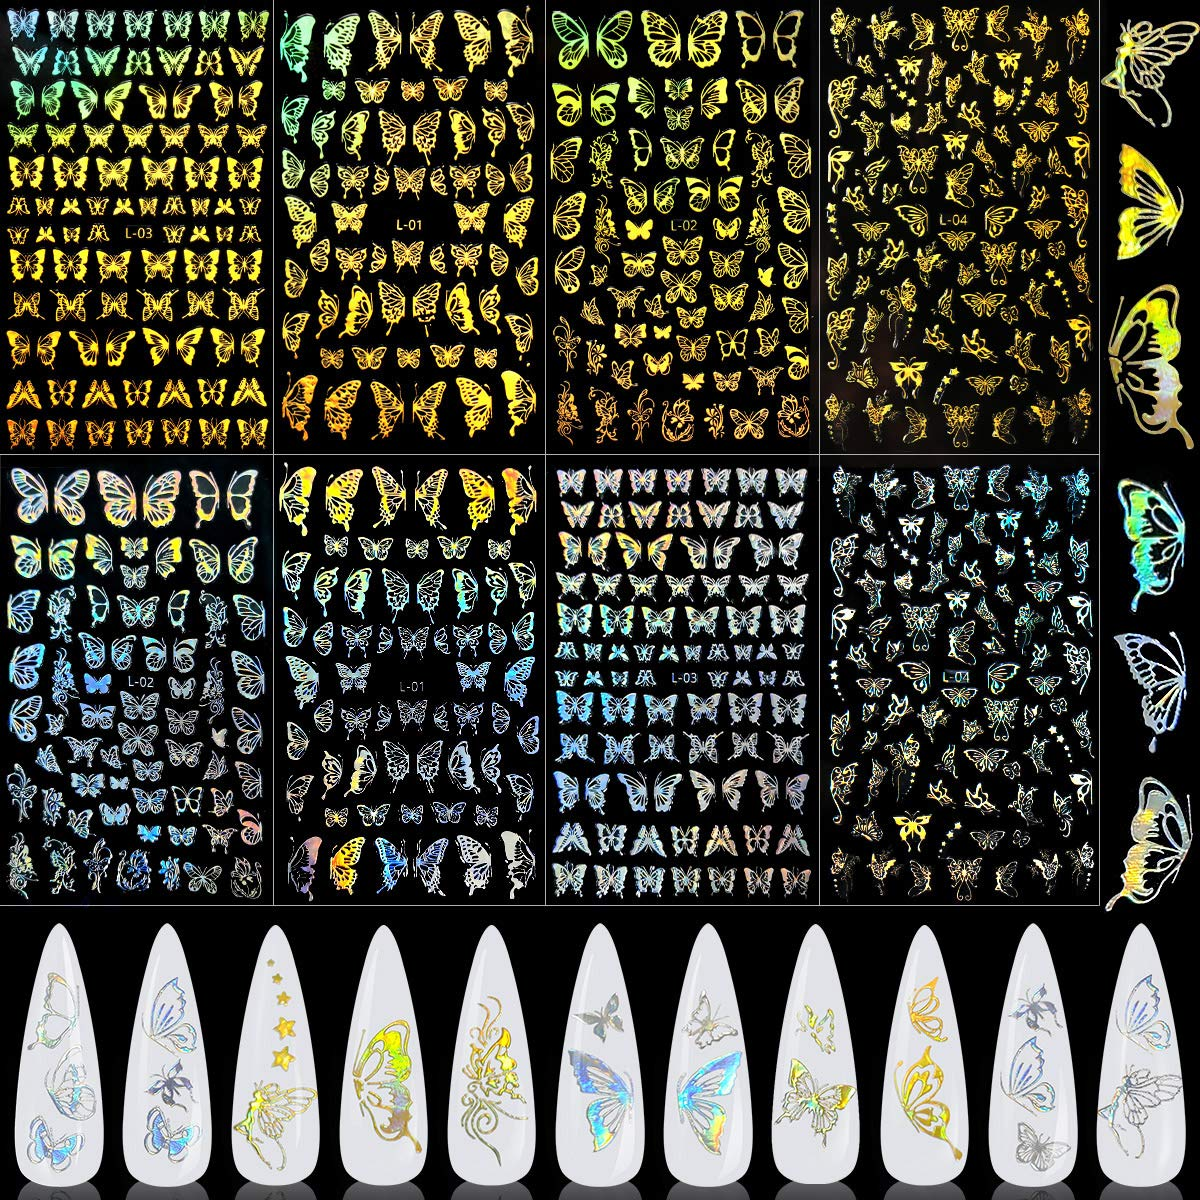 Holographic Butterfly Nail Art Sticker, KISSBUTY 8 Sheets Gold Silver Butterfly Nail Decals Gummed Laser Butterflies Nail Adhesive Stickers Holographic Gold Butterfly Nail Art Decor Butterfly Manicure